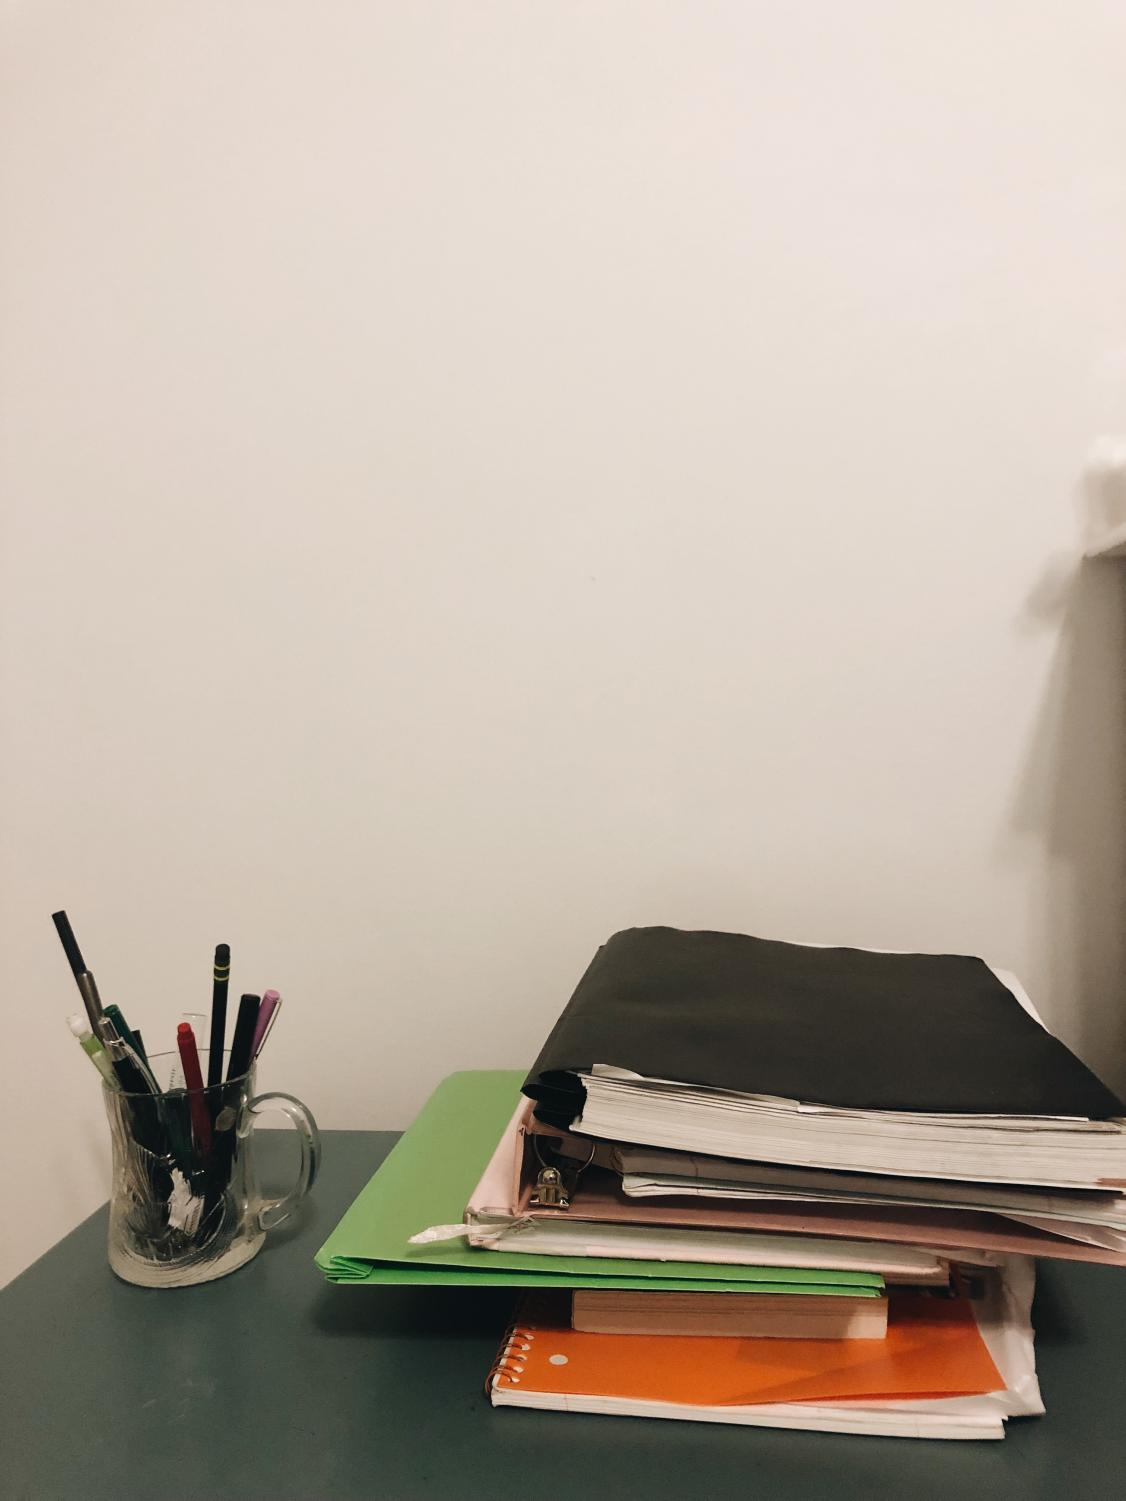 Many students suggested staying organized with folders and notebooks to help avoid stress during the semester.